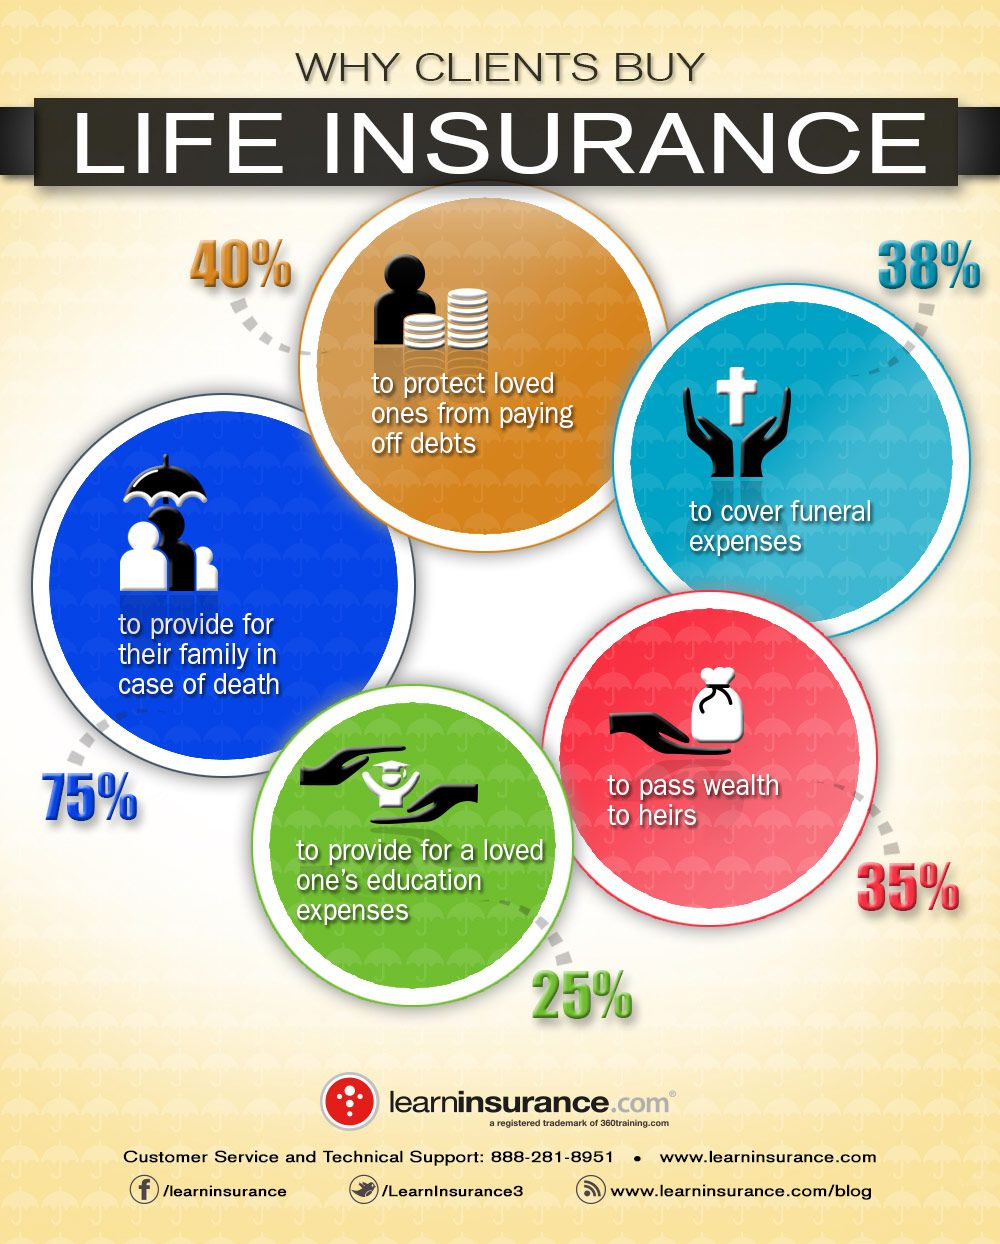 Life Insurance Quotes Compare The Market: 25+ Unique Life Insurance Types Ideas On Pinterest